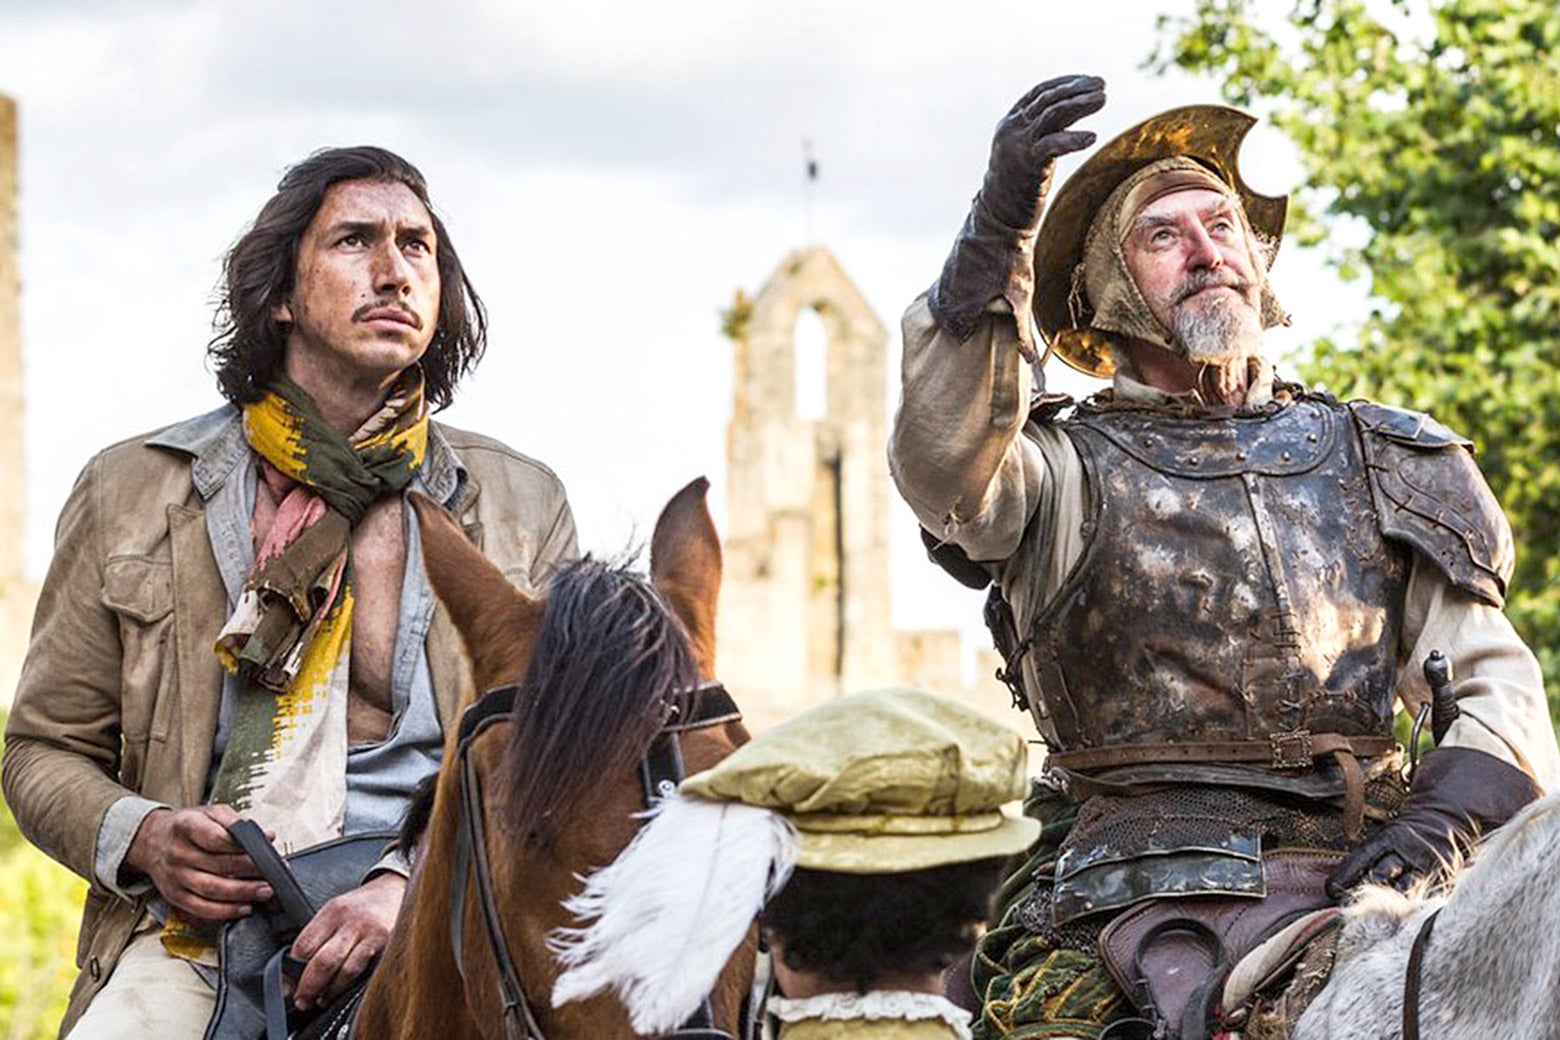 Adam Driver and Jonathan Pryce, on horseback, in The Man Who Killed Don Quixote.